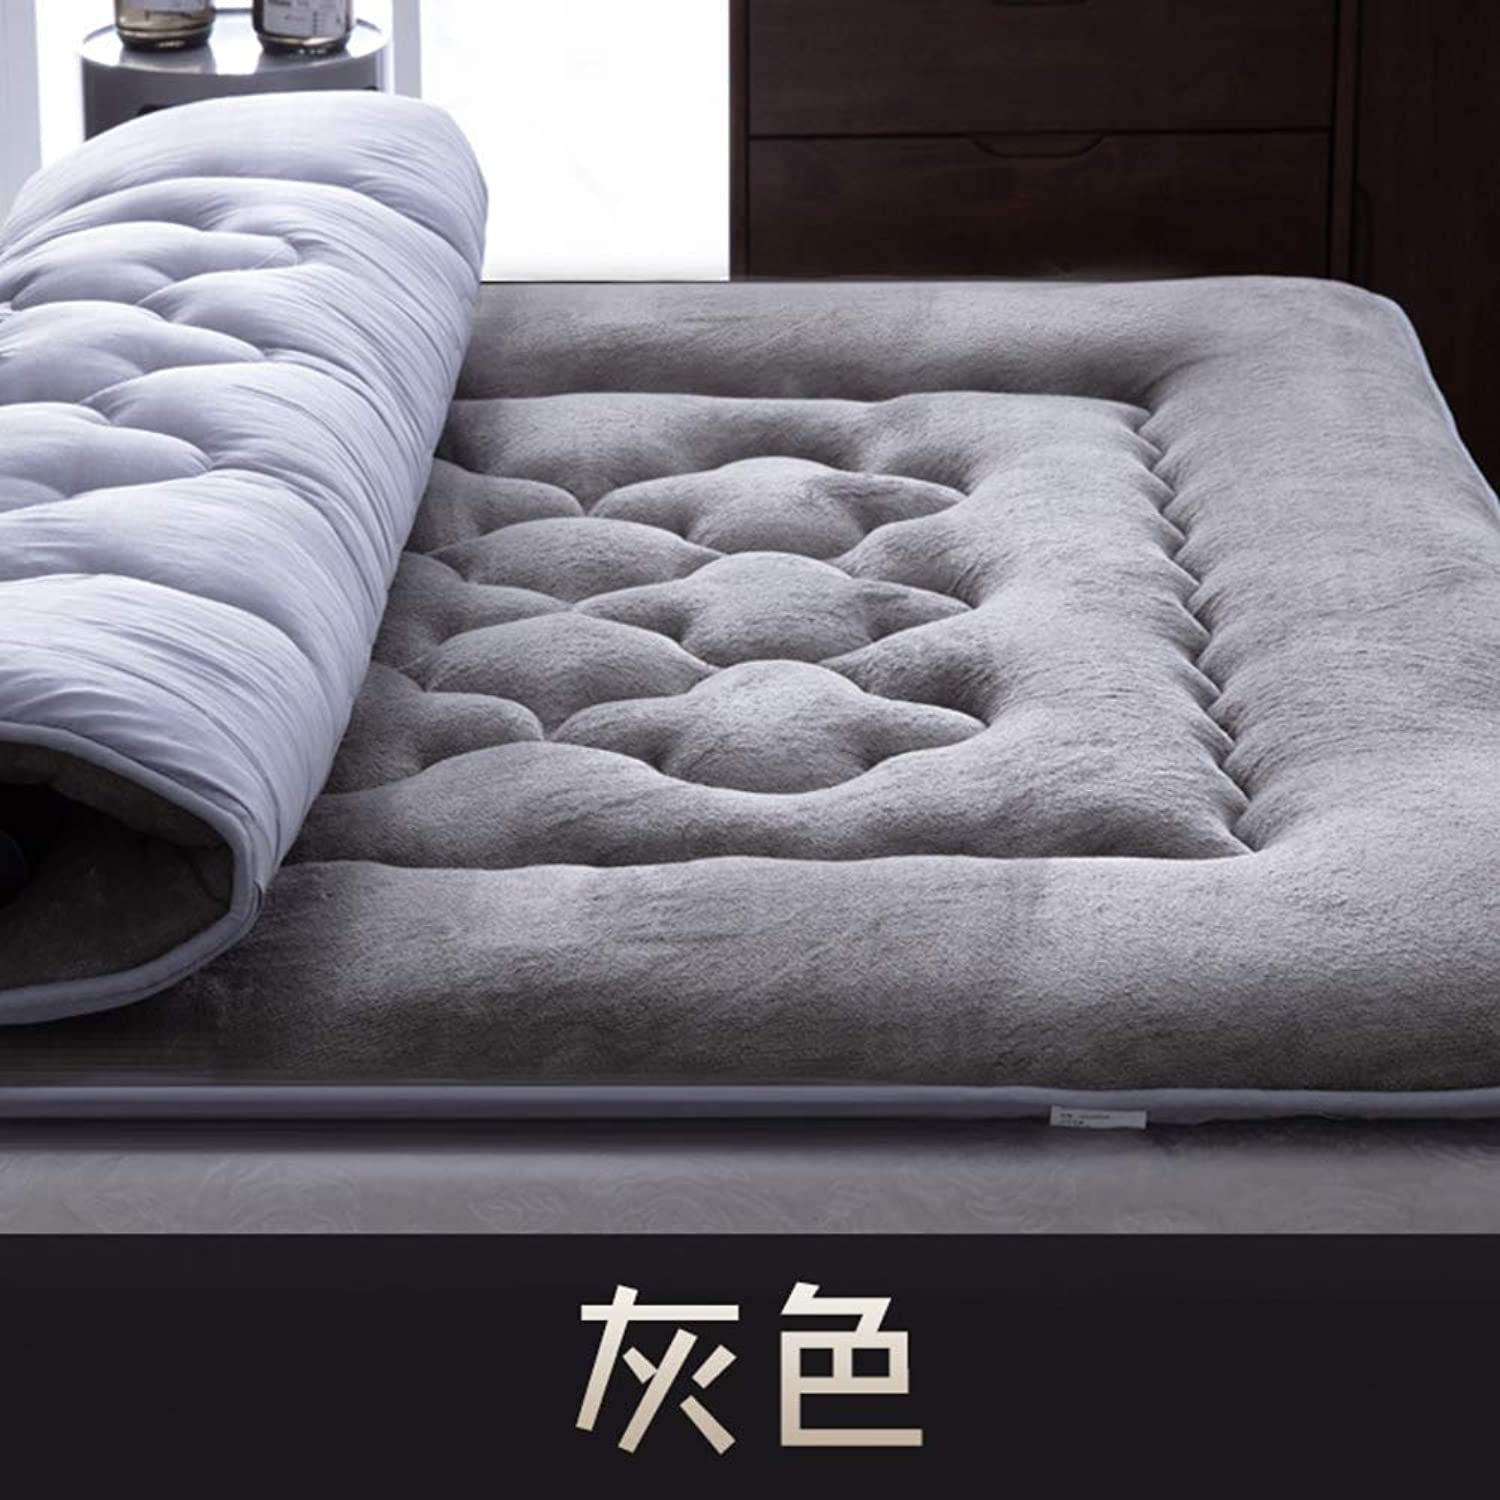 Tatami Mattress,1.8m Mattress Foldable Mattress,Student Dormitory Folding Mattress-b 120x200cm(47x79inch)